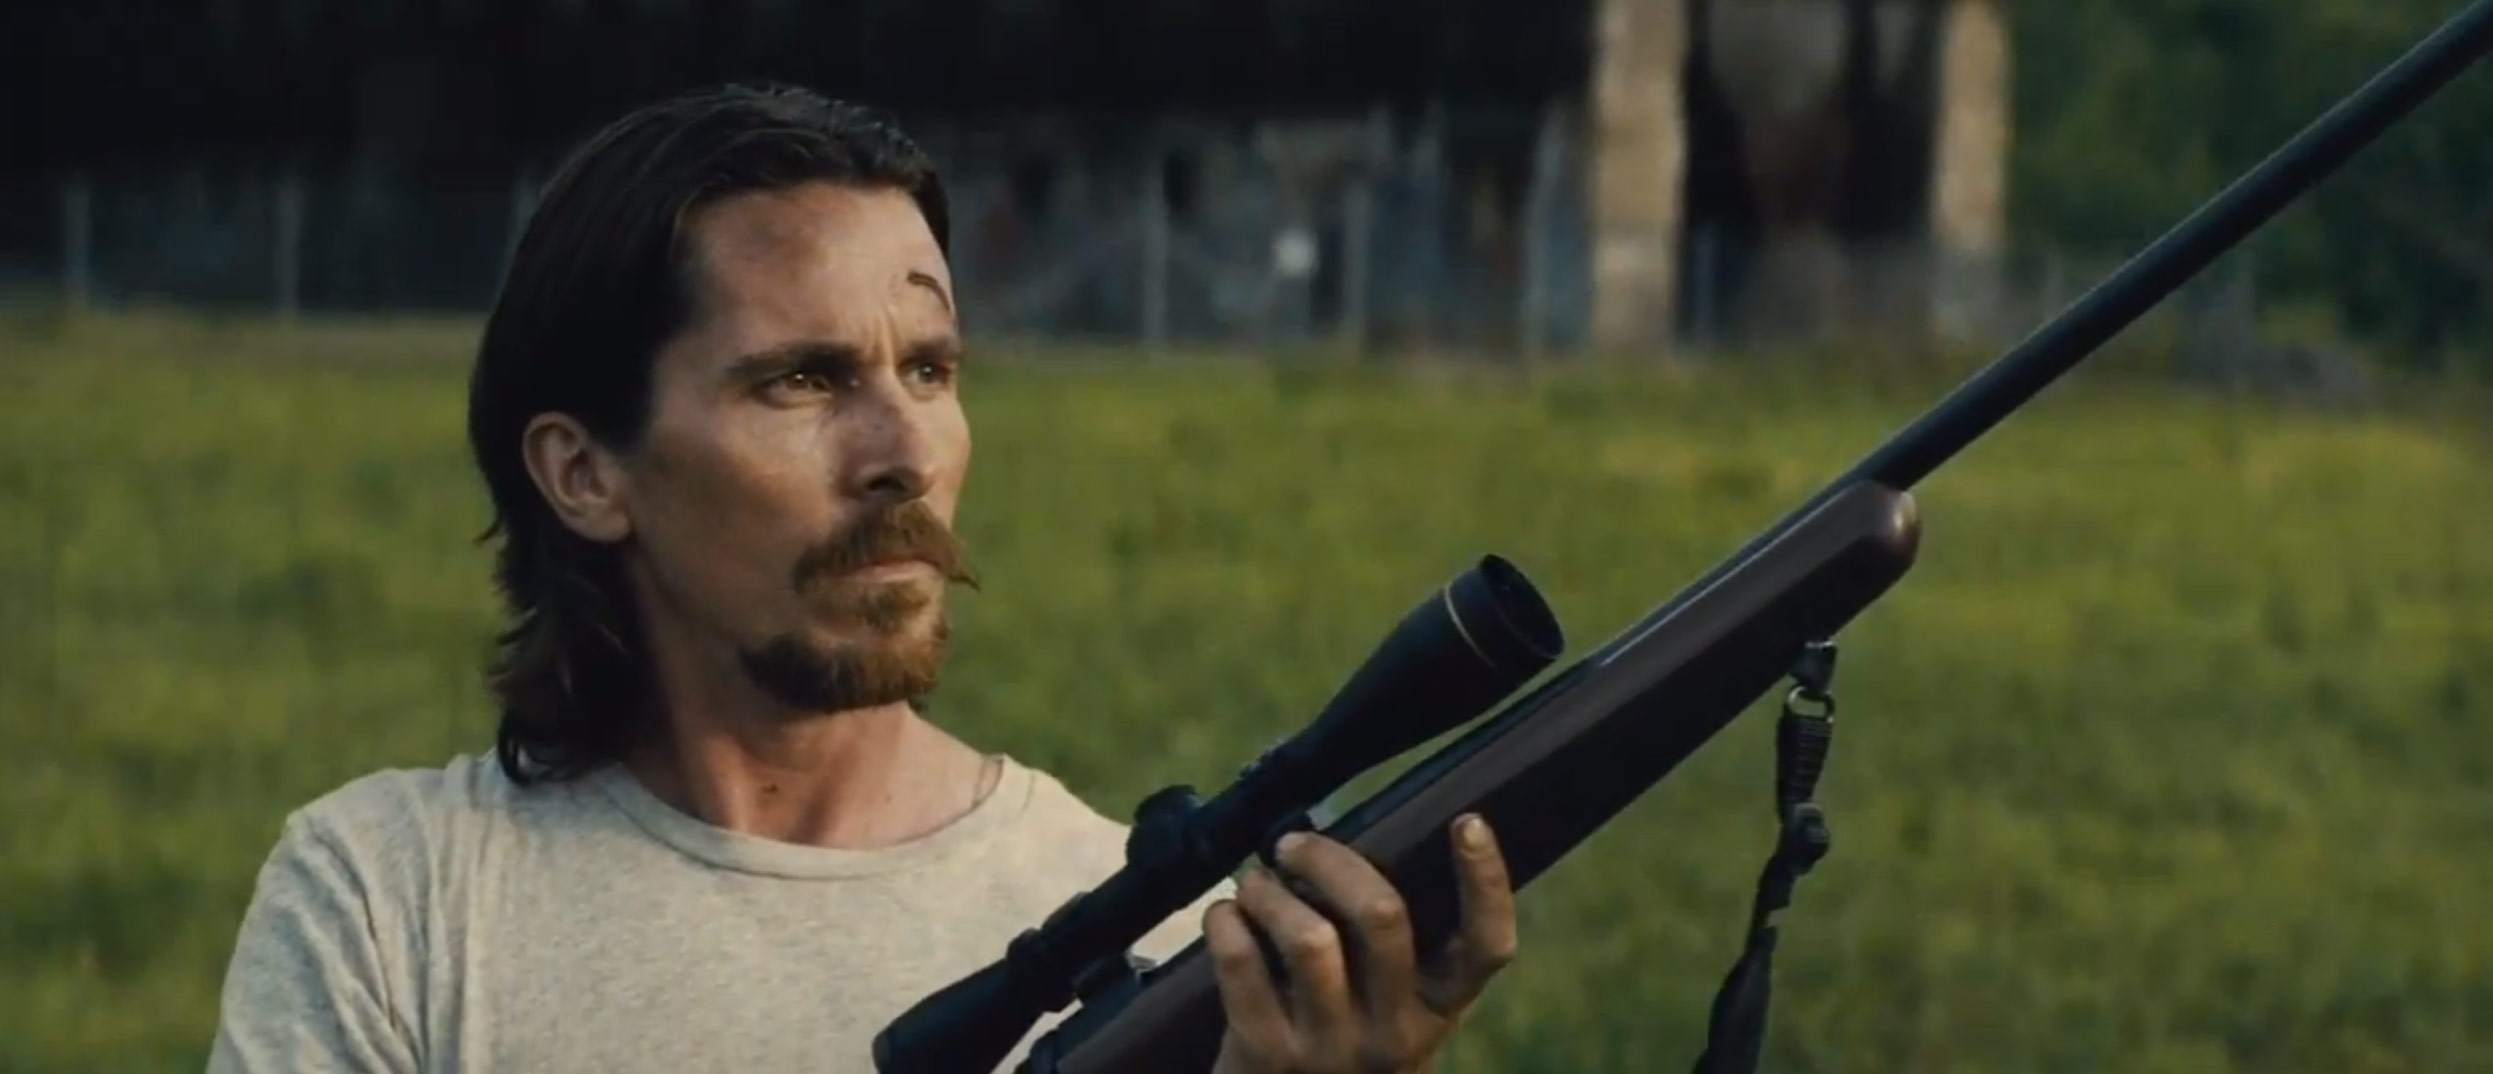 When Rodney Baze mysteriously disappears and law enforcement fails to ... Christian Bale